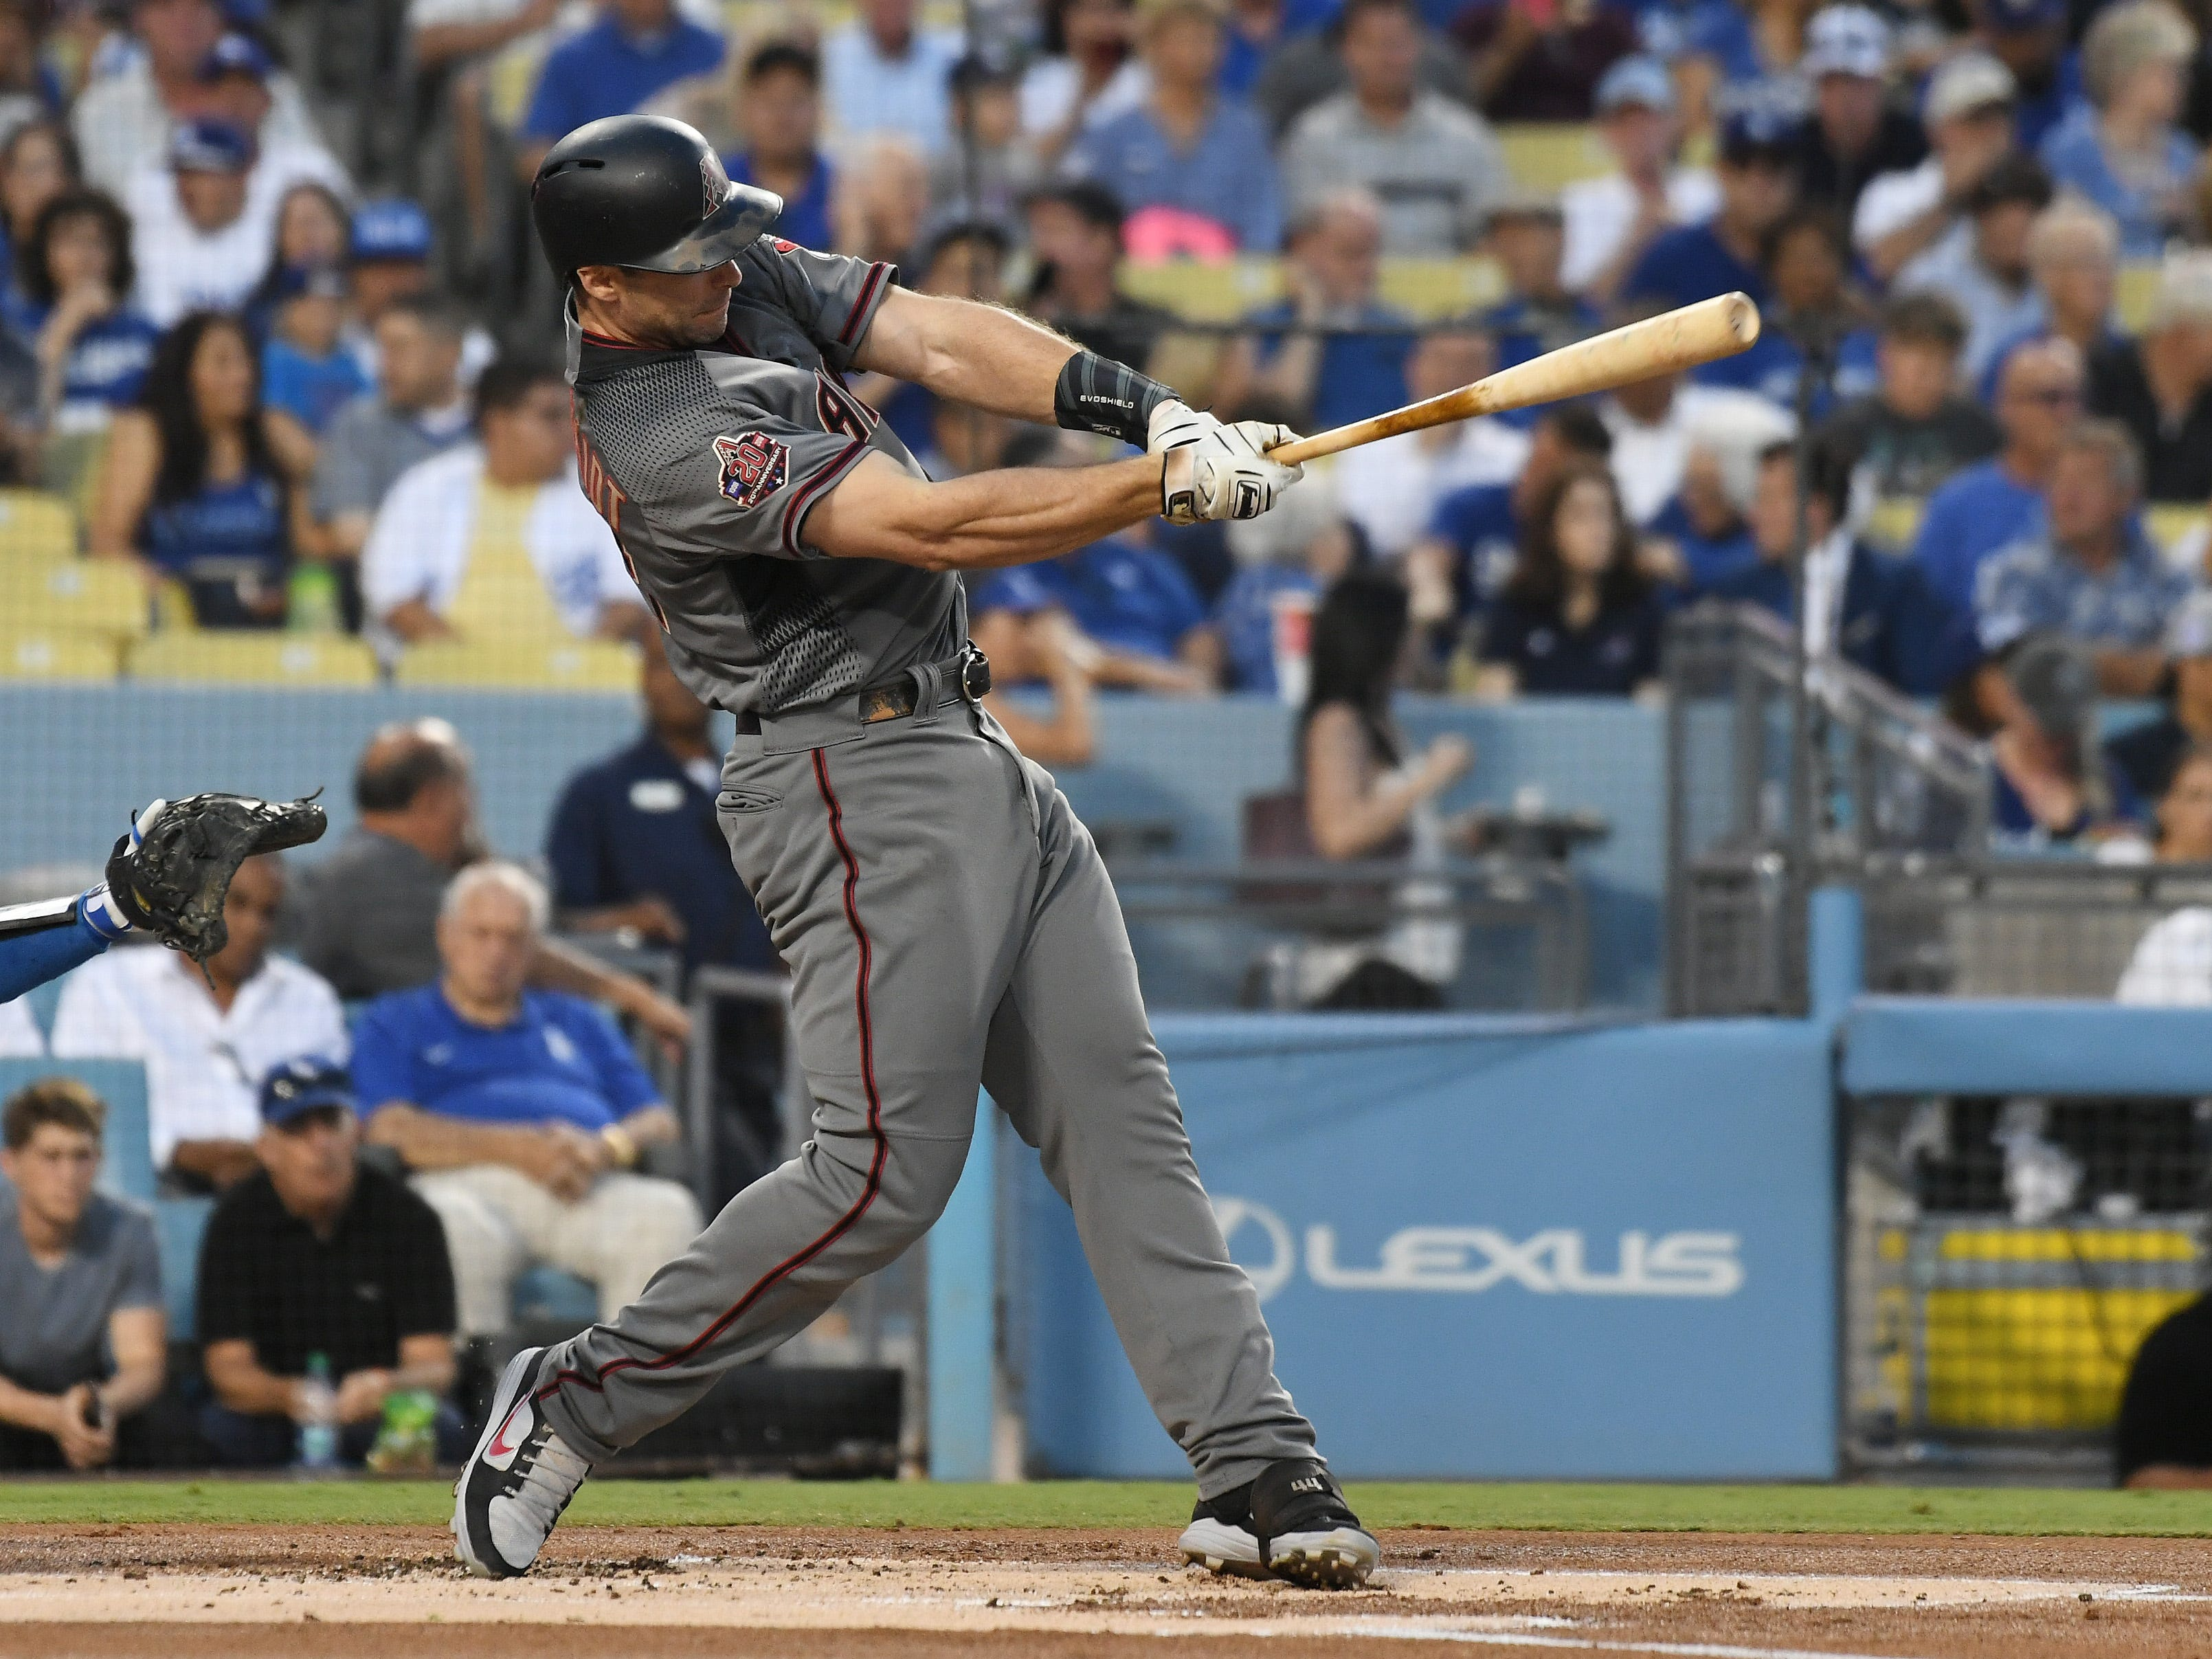 Aug 30, 2018; Los Angeles, CA, USA; Arizona Diamondbacks first baseman Paul Goldschmidt (44) hits a single against the Los Angeles Dodgers in the first inninat Dodger Stadium. Mandatory Credit: Richard Mackson-USA TODAY Sports